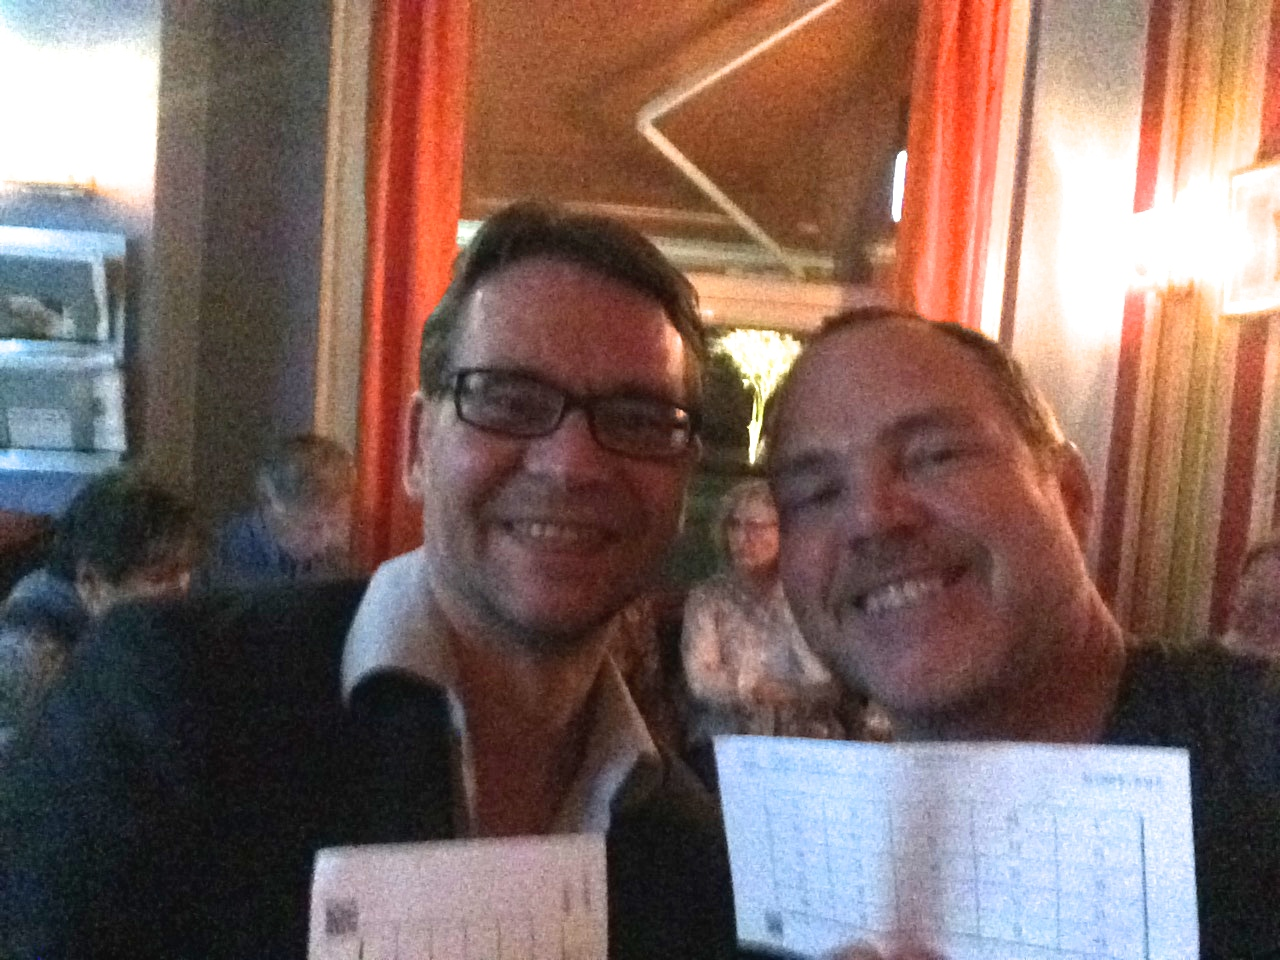 Our night out at Gay Bingo at the club Blond